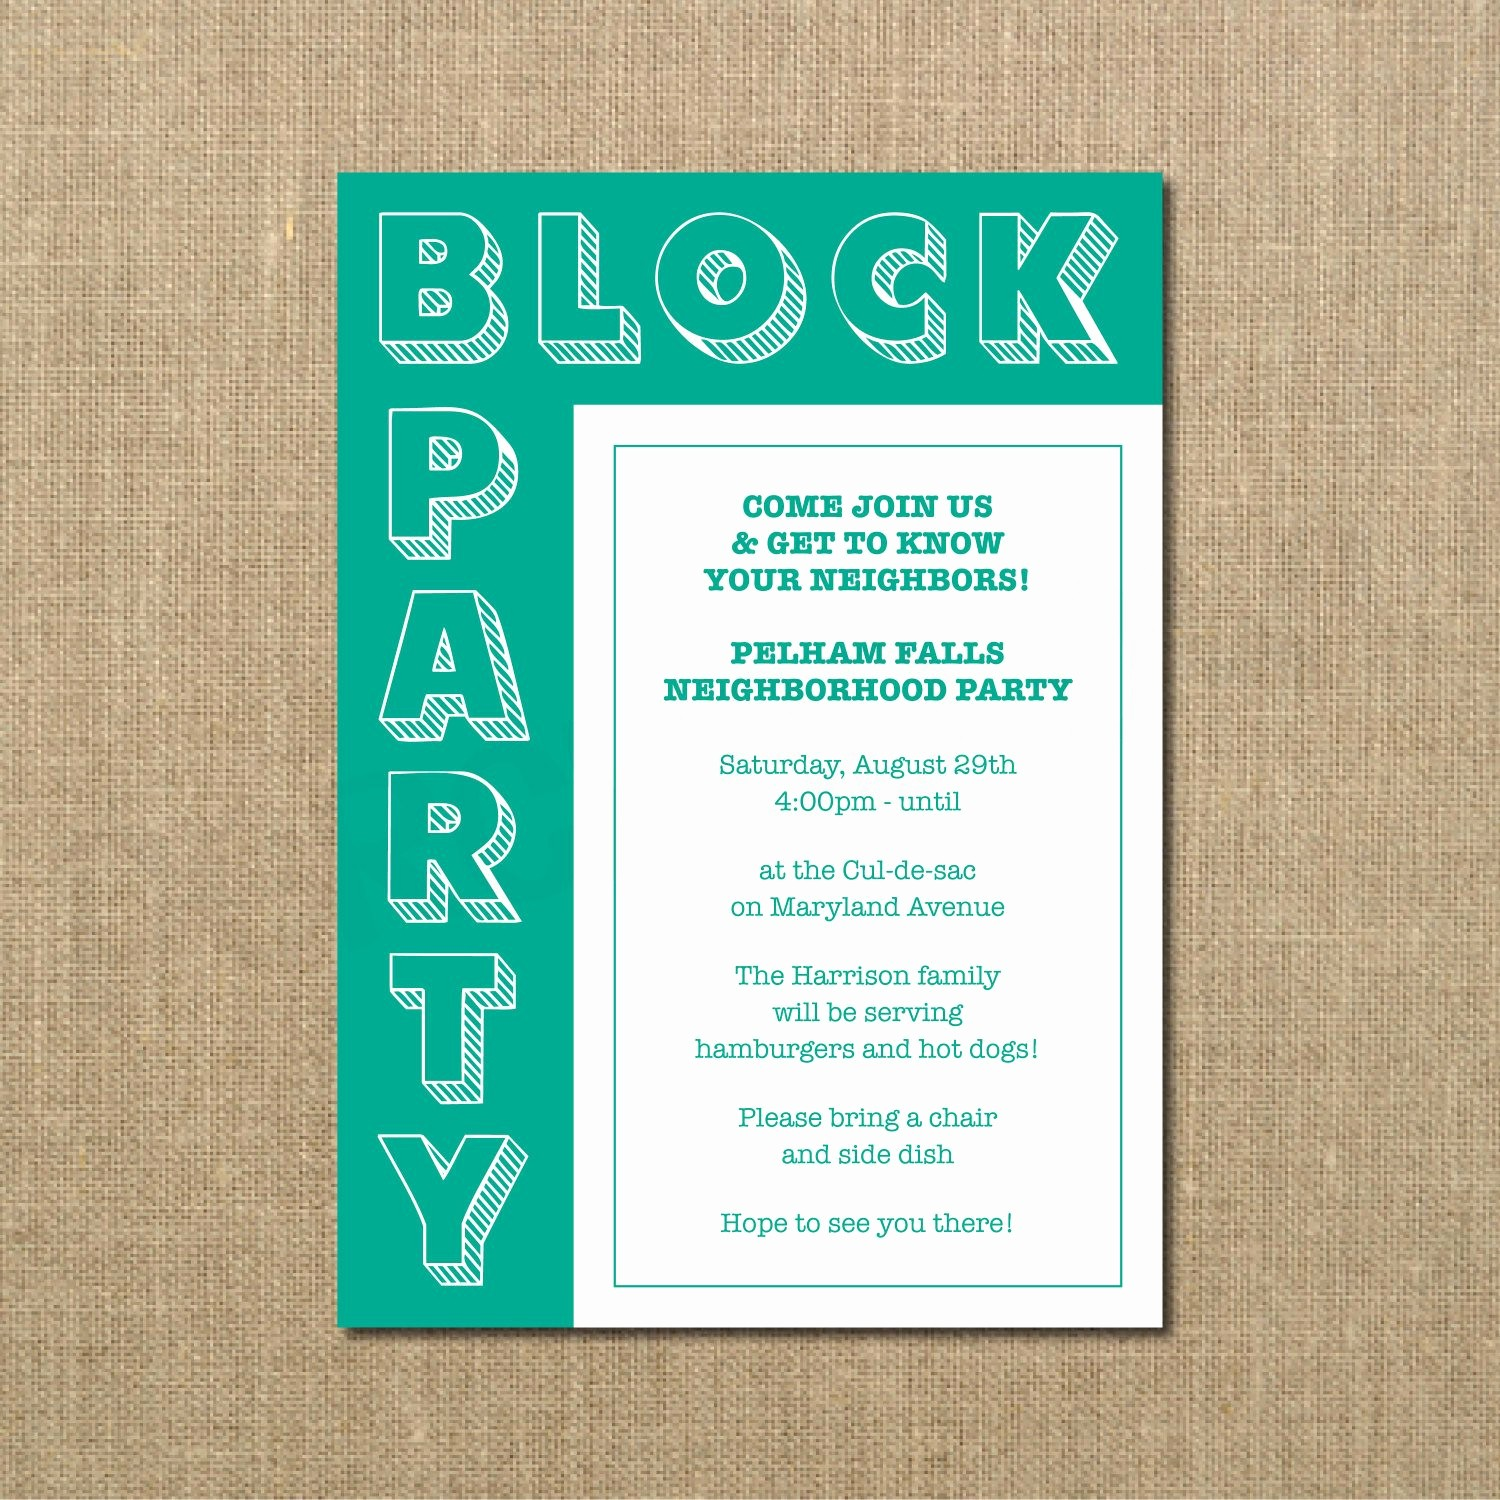 Block Party Flyer Templates Free Inspirational Neighborhood Block Party Cookout Invitation Grilling Out